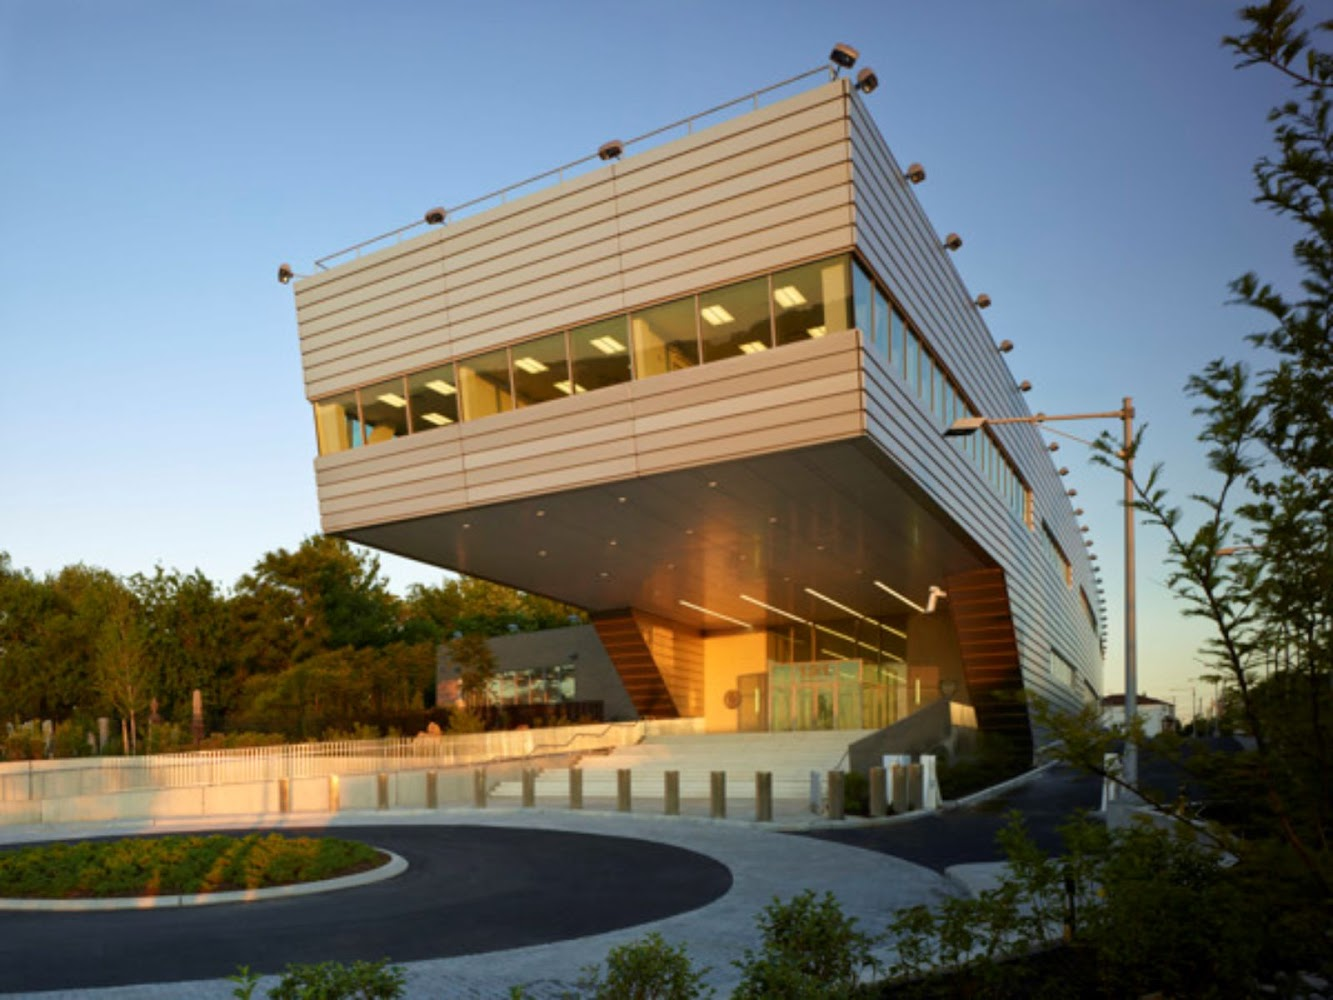 121st Police Precinct Station House by Rafael Vinoly